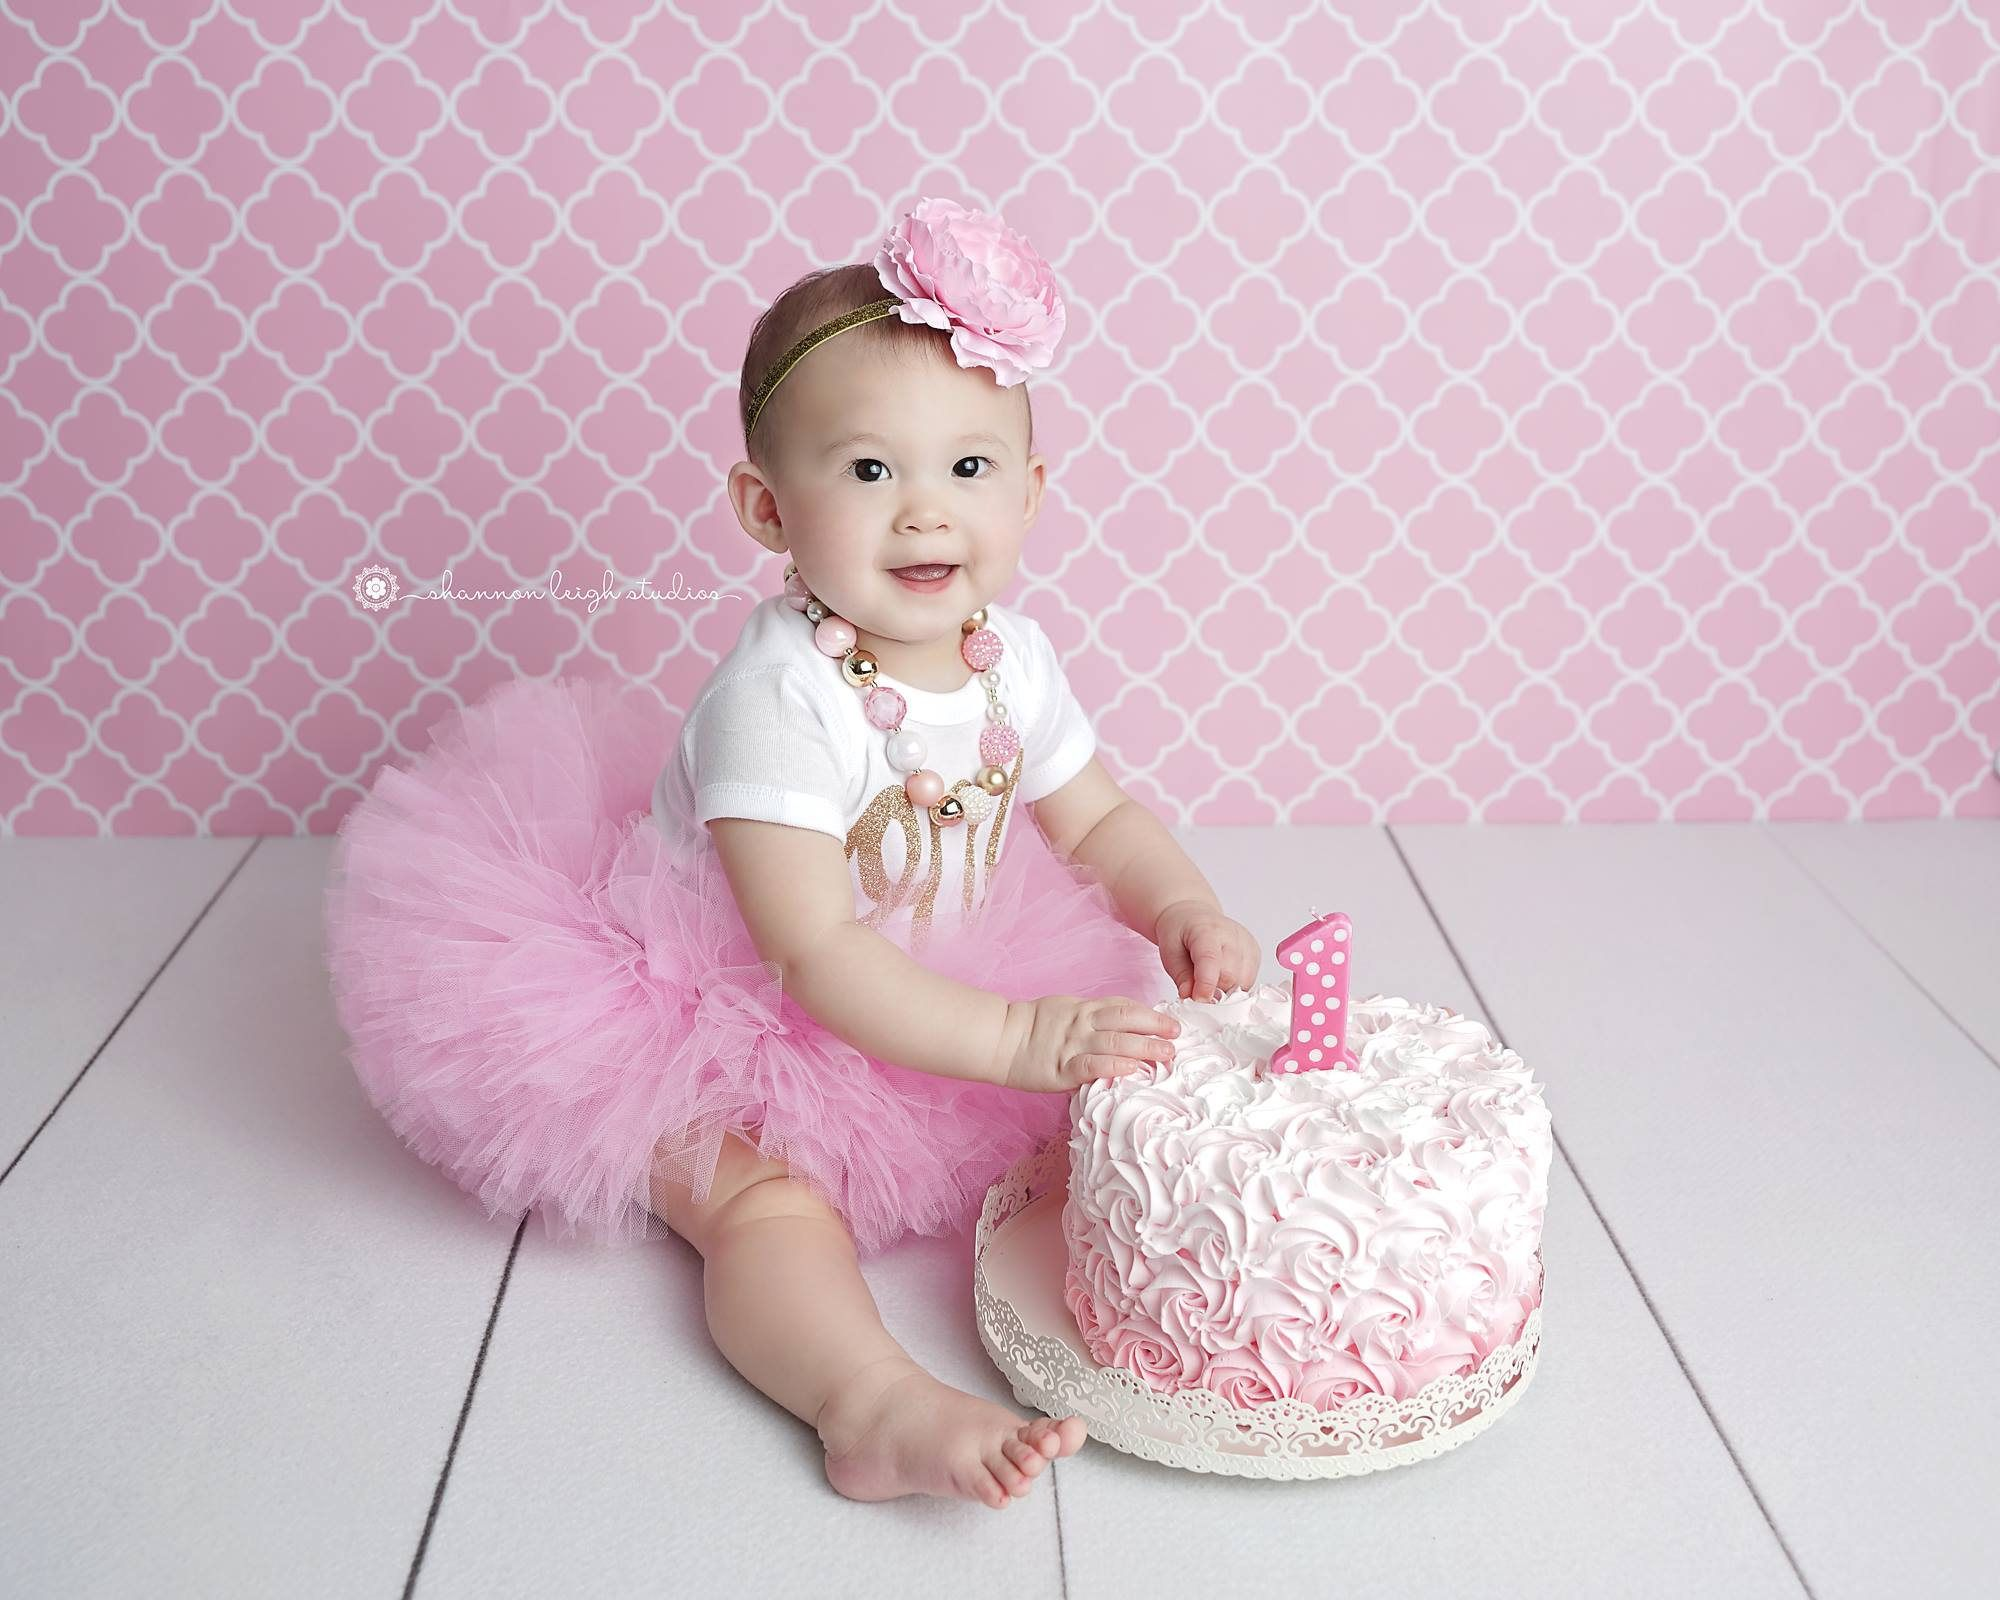 FIRST BIRTHDAY OUTFIT Girl Cake Smash Outfit Birthday Pink And Gold Tutu Set 1st By LilPinkGoose